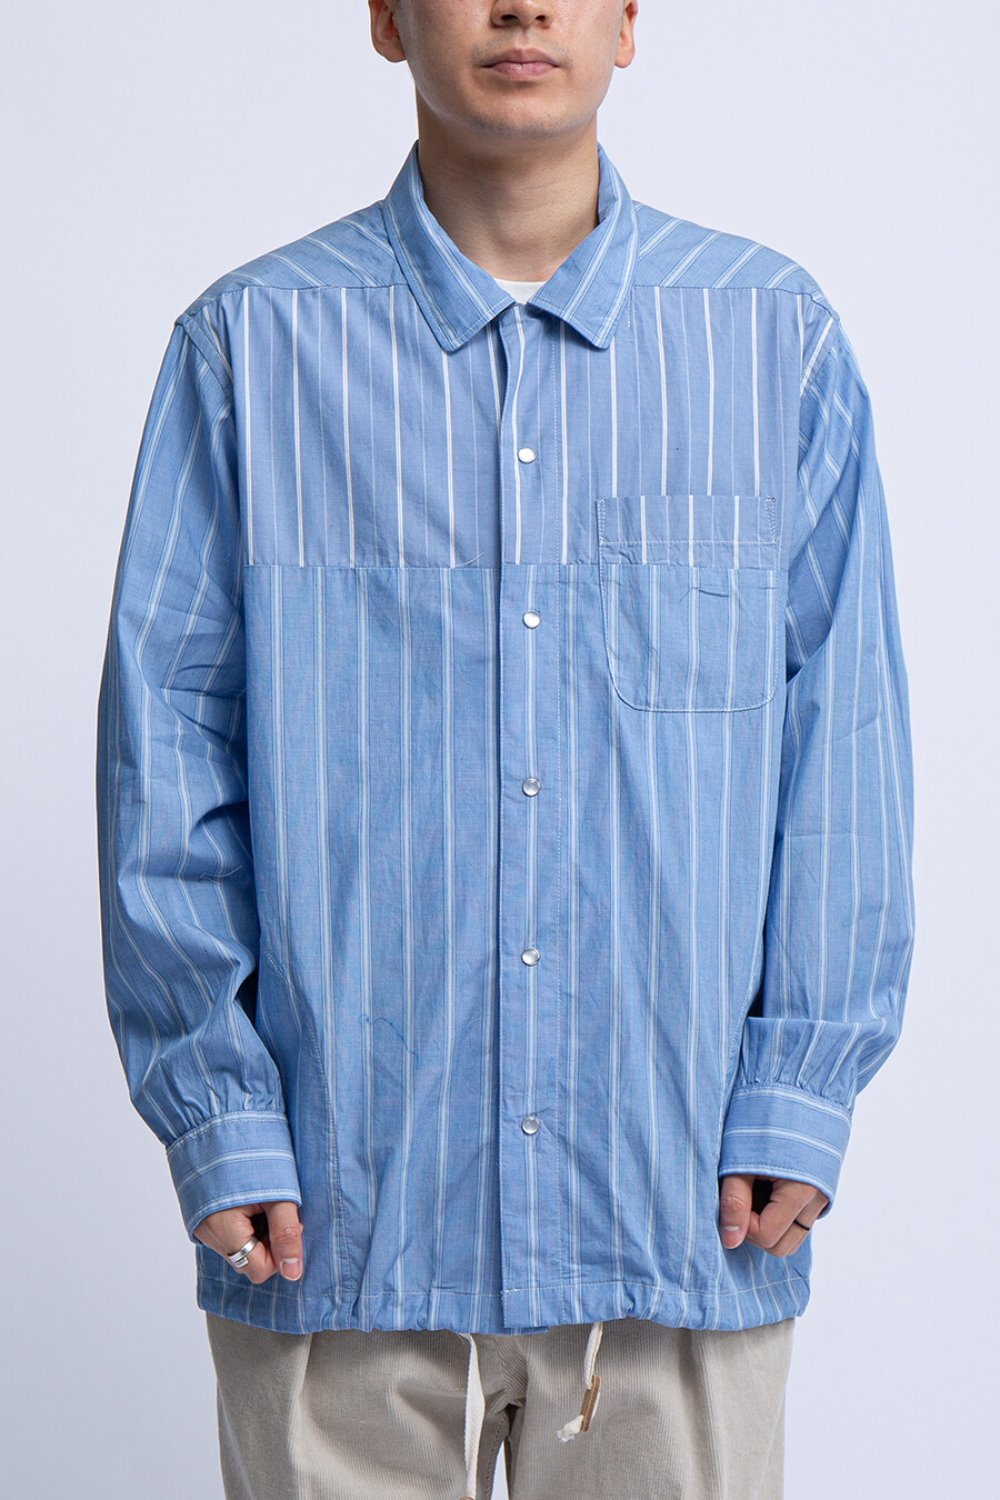 COACH SHIRT BLUE/WHITE WIDE REGENT ST